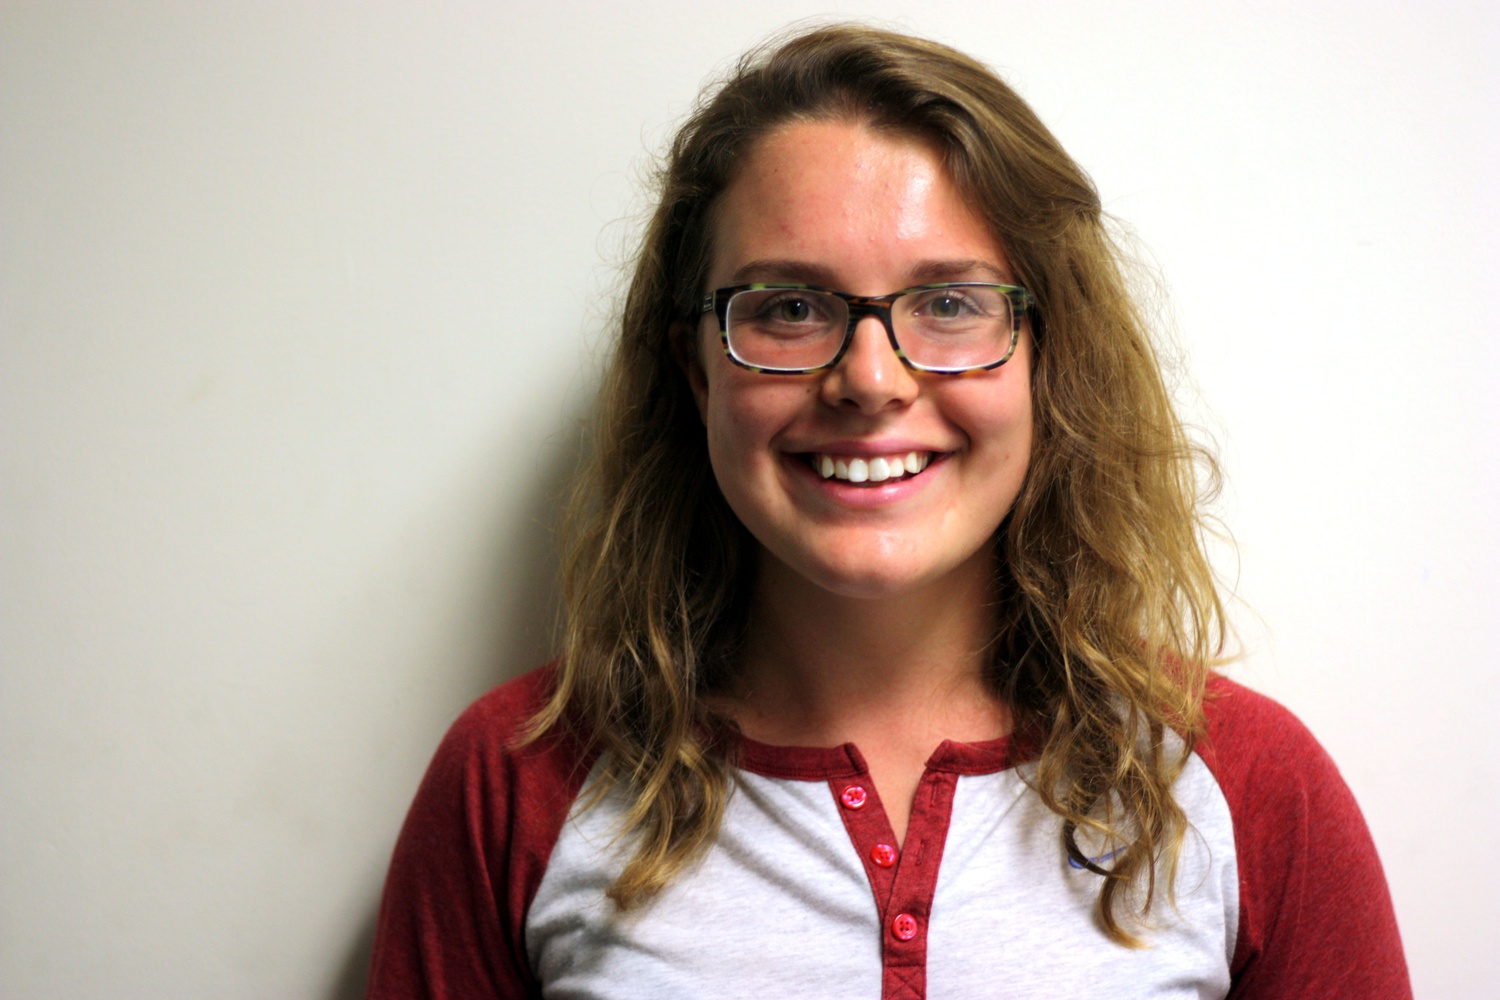 Annie C. Harvieux '16 is an English concentrator in Winthrop House.